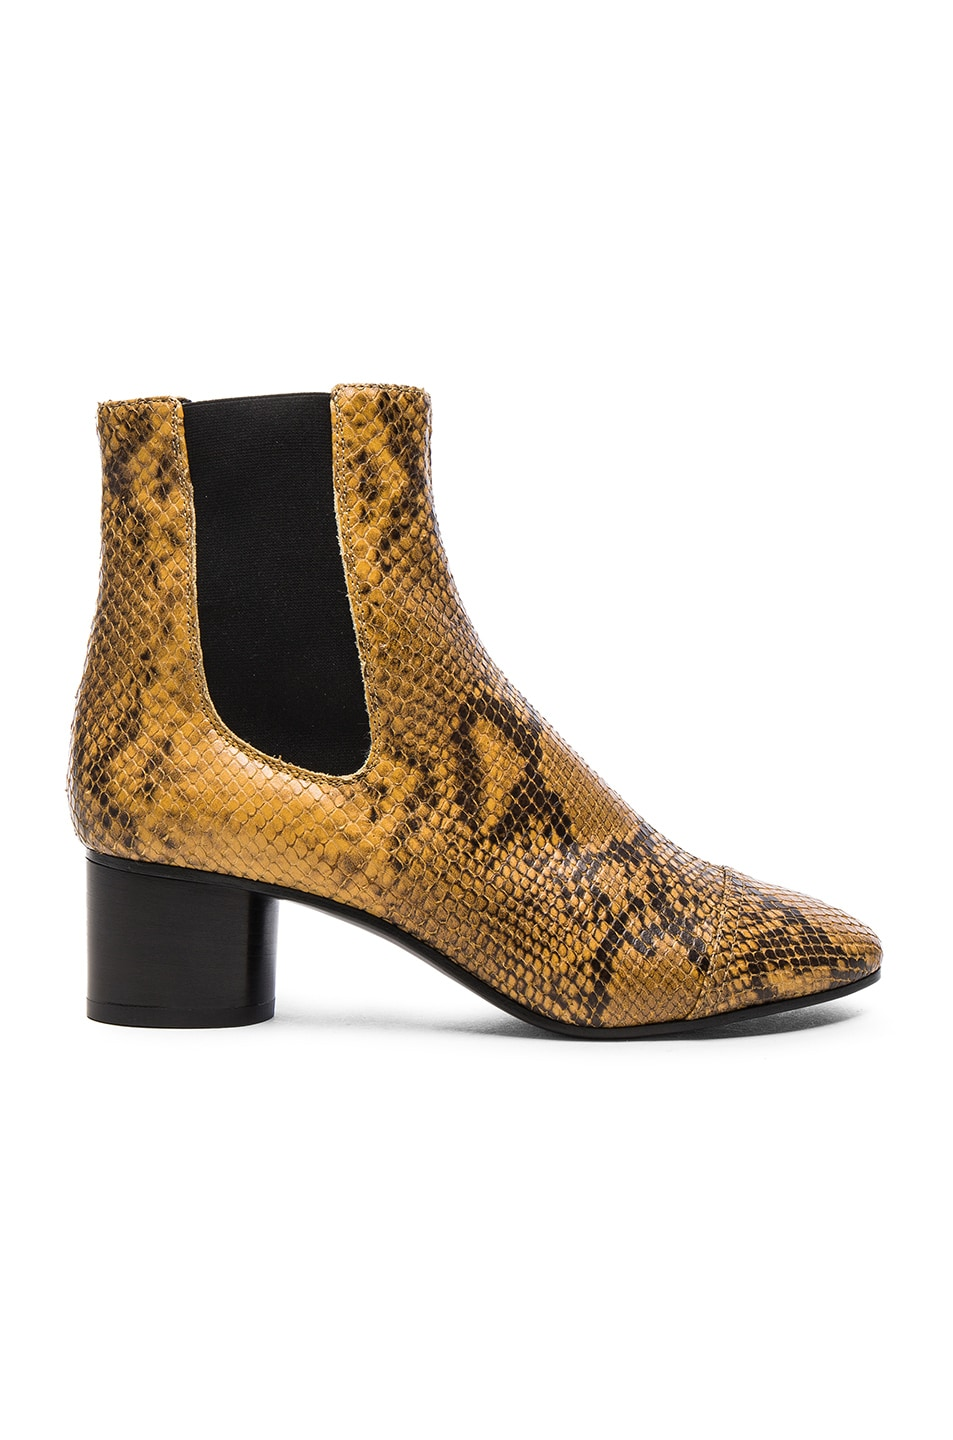 Image 1 of Isabel Marant Danae Printed Python Booties in Amber Gold